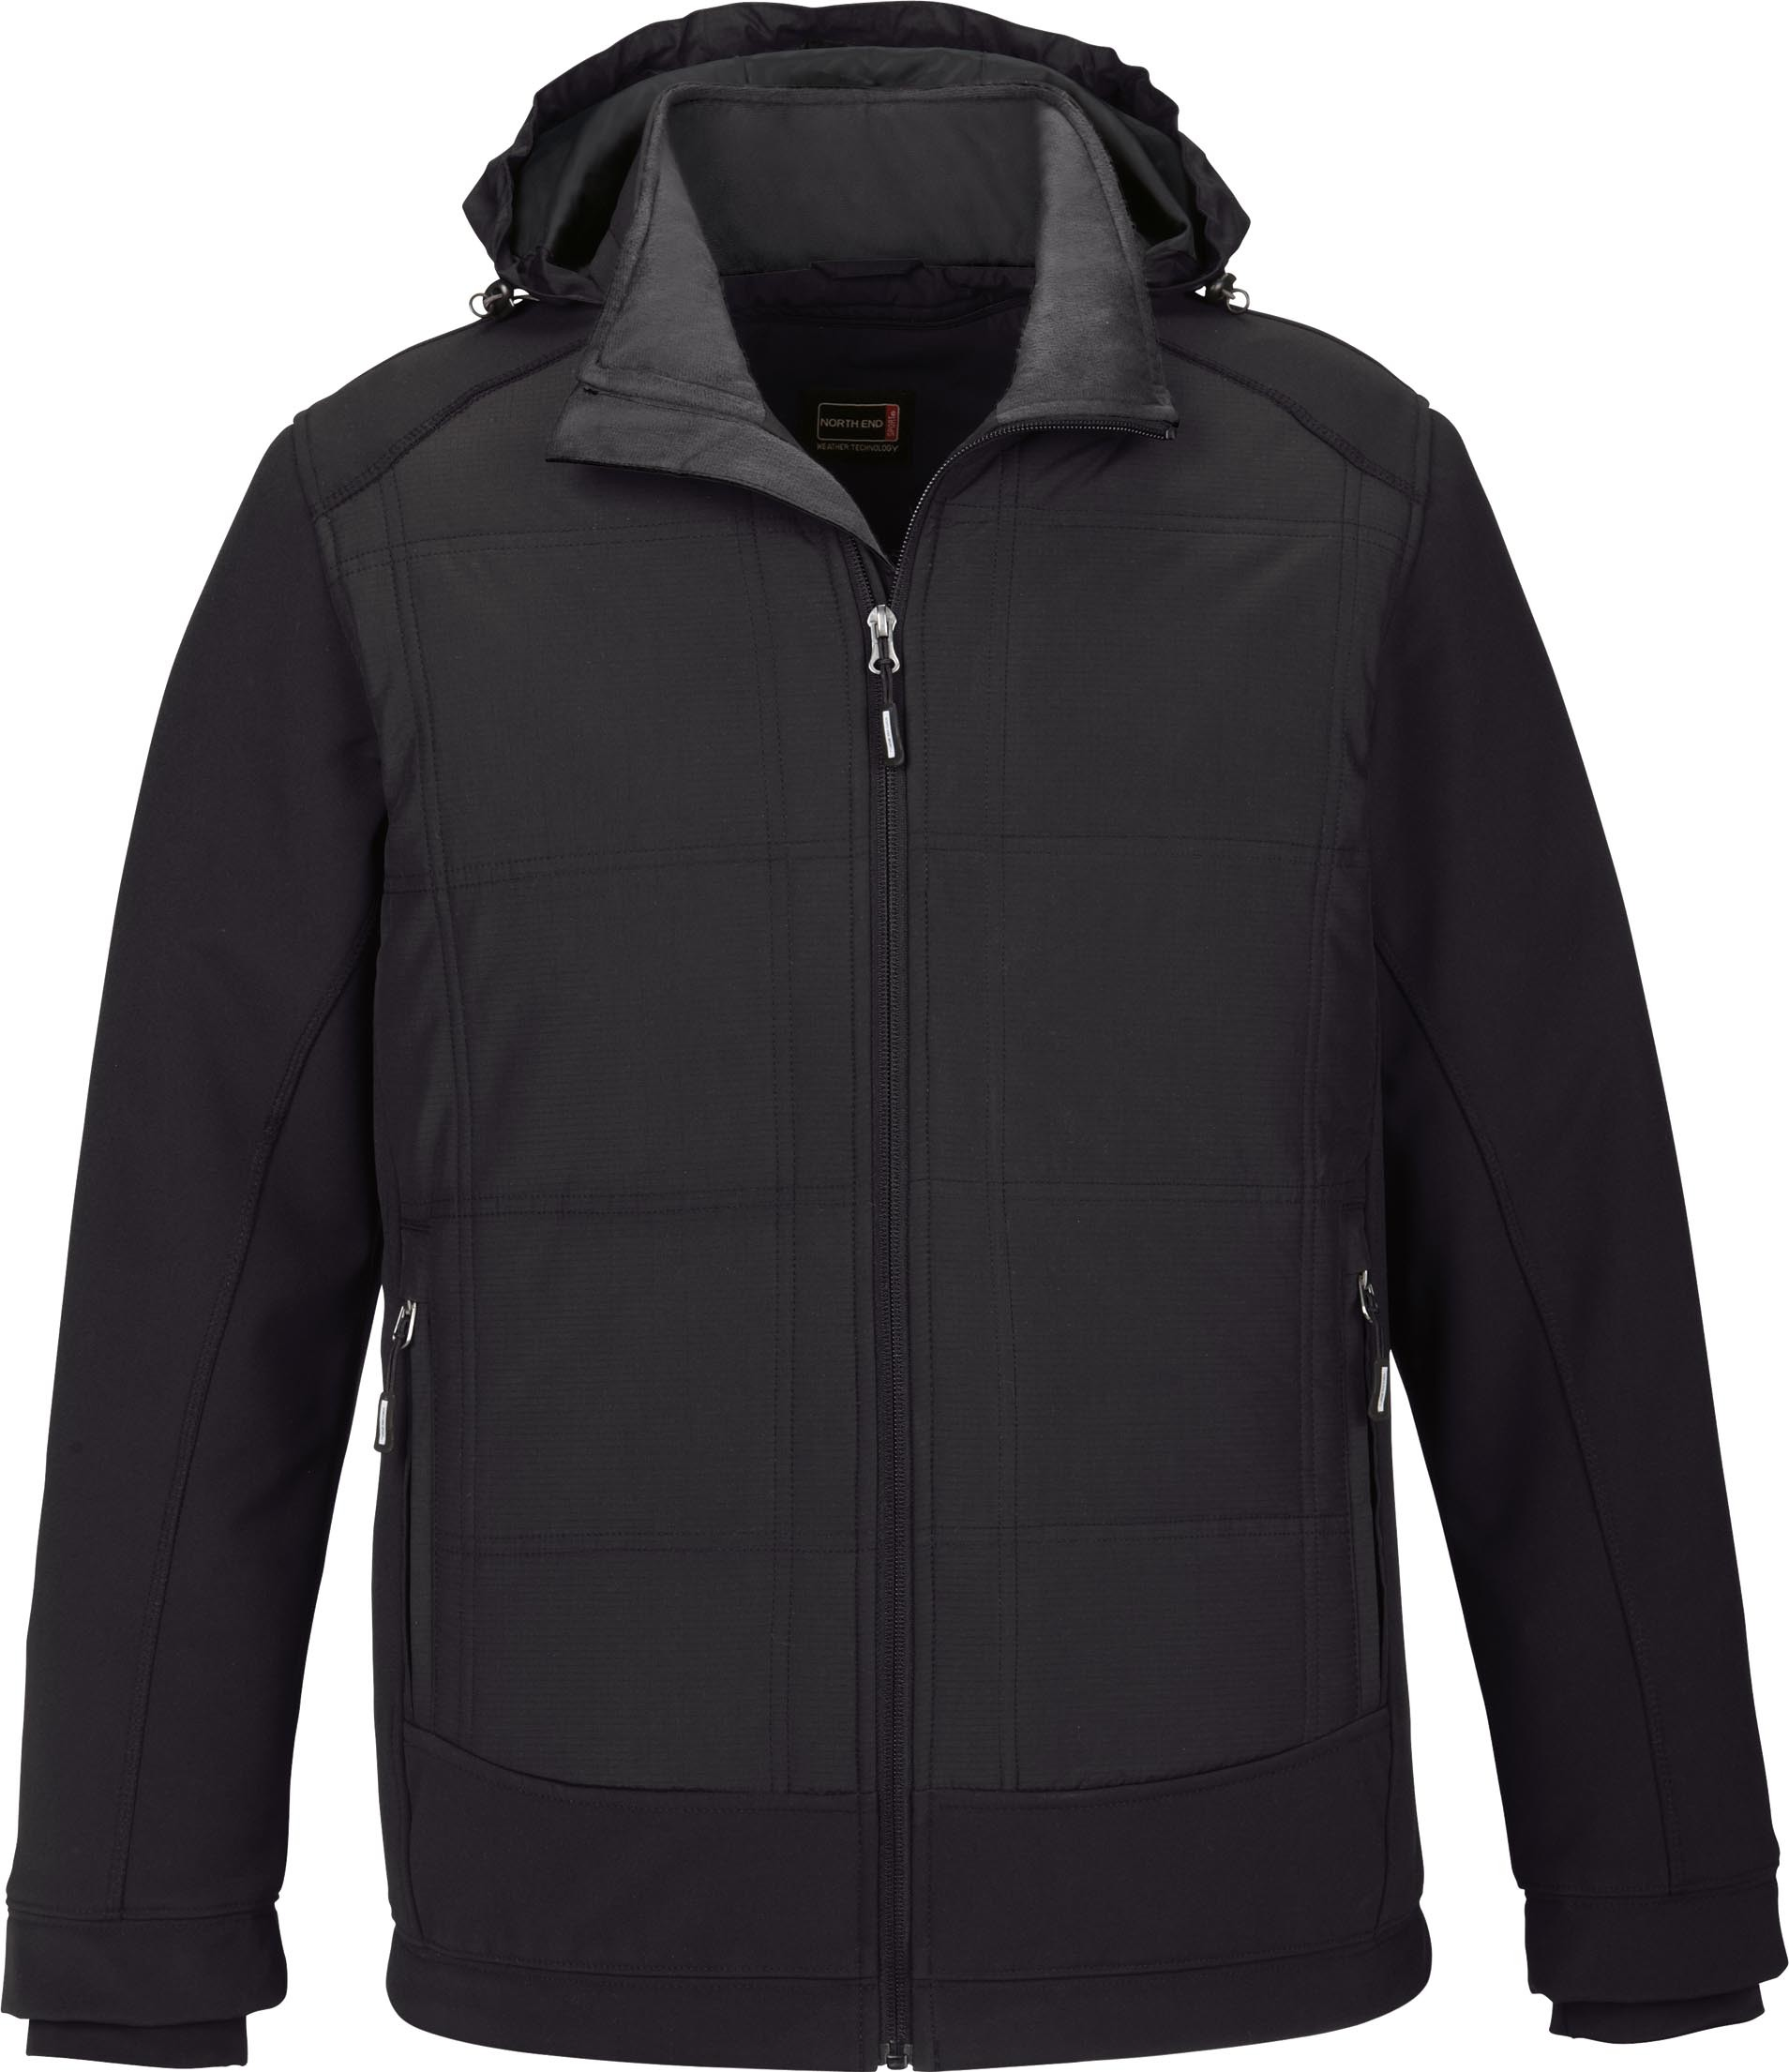 Ash City UTK 2 Warm.Logik 88661 - Neo Men's Insulated ...